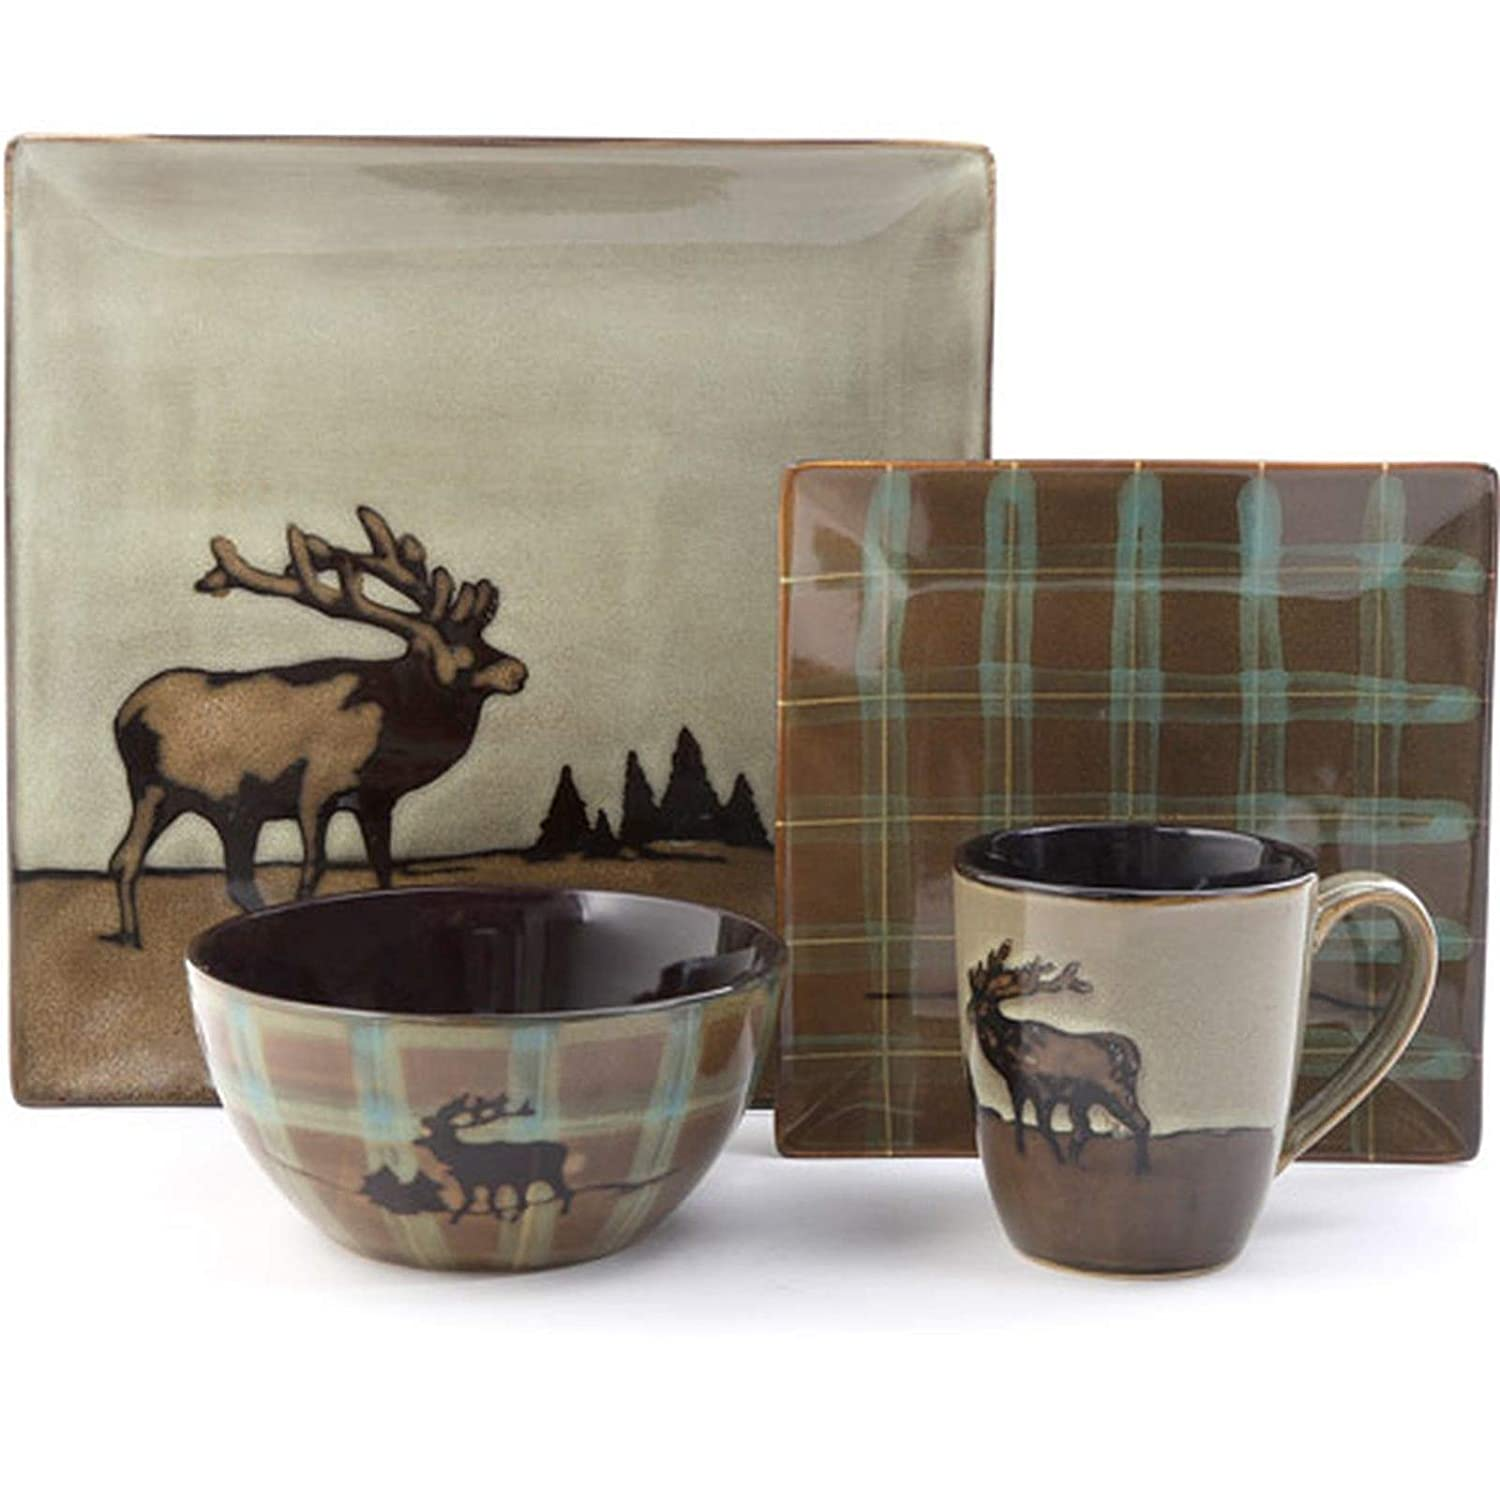 Roaming Elk Stoneware Dinnerware Set